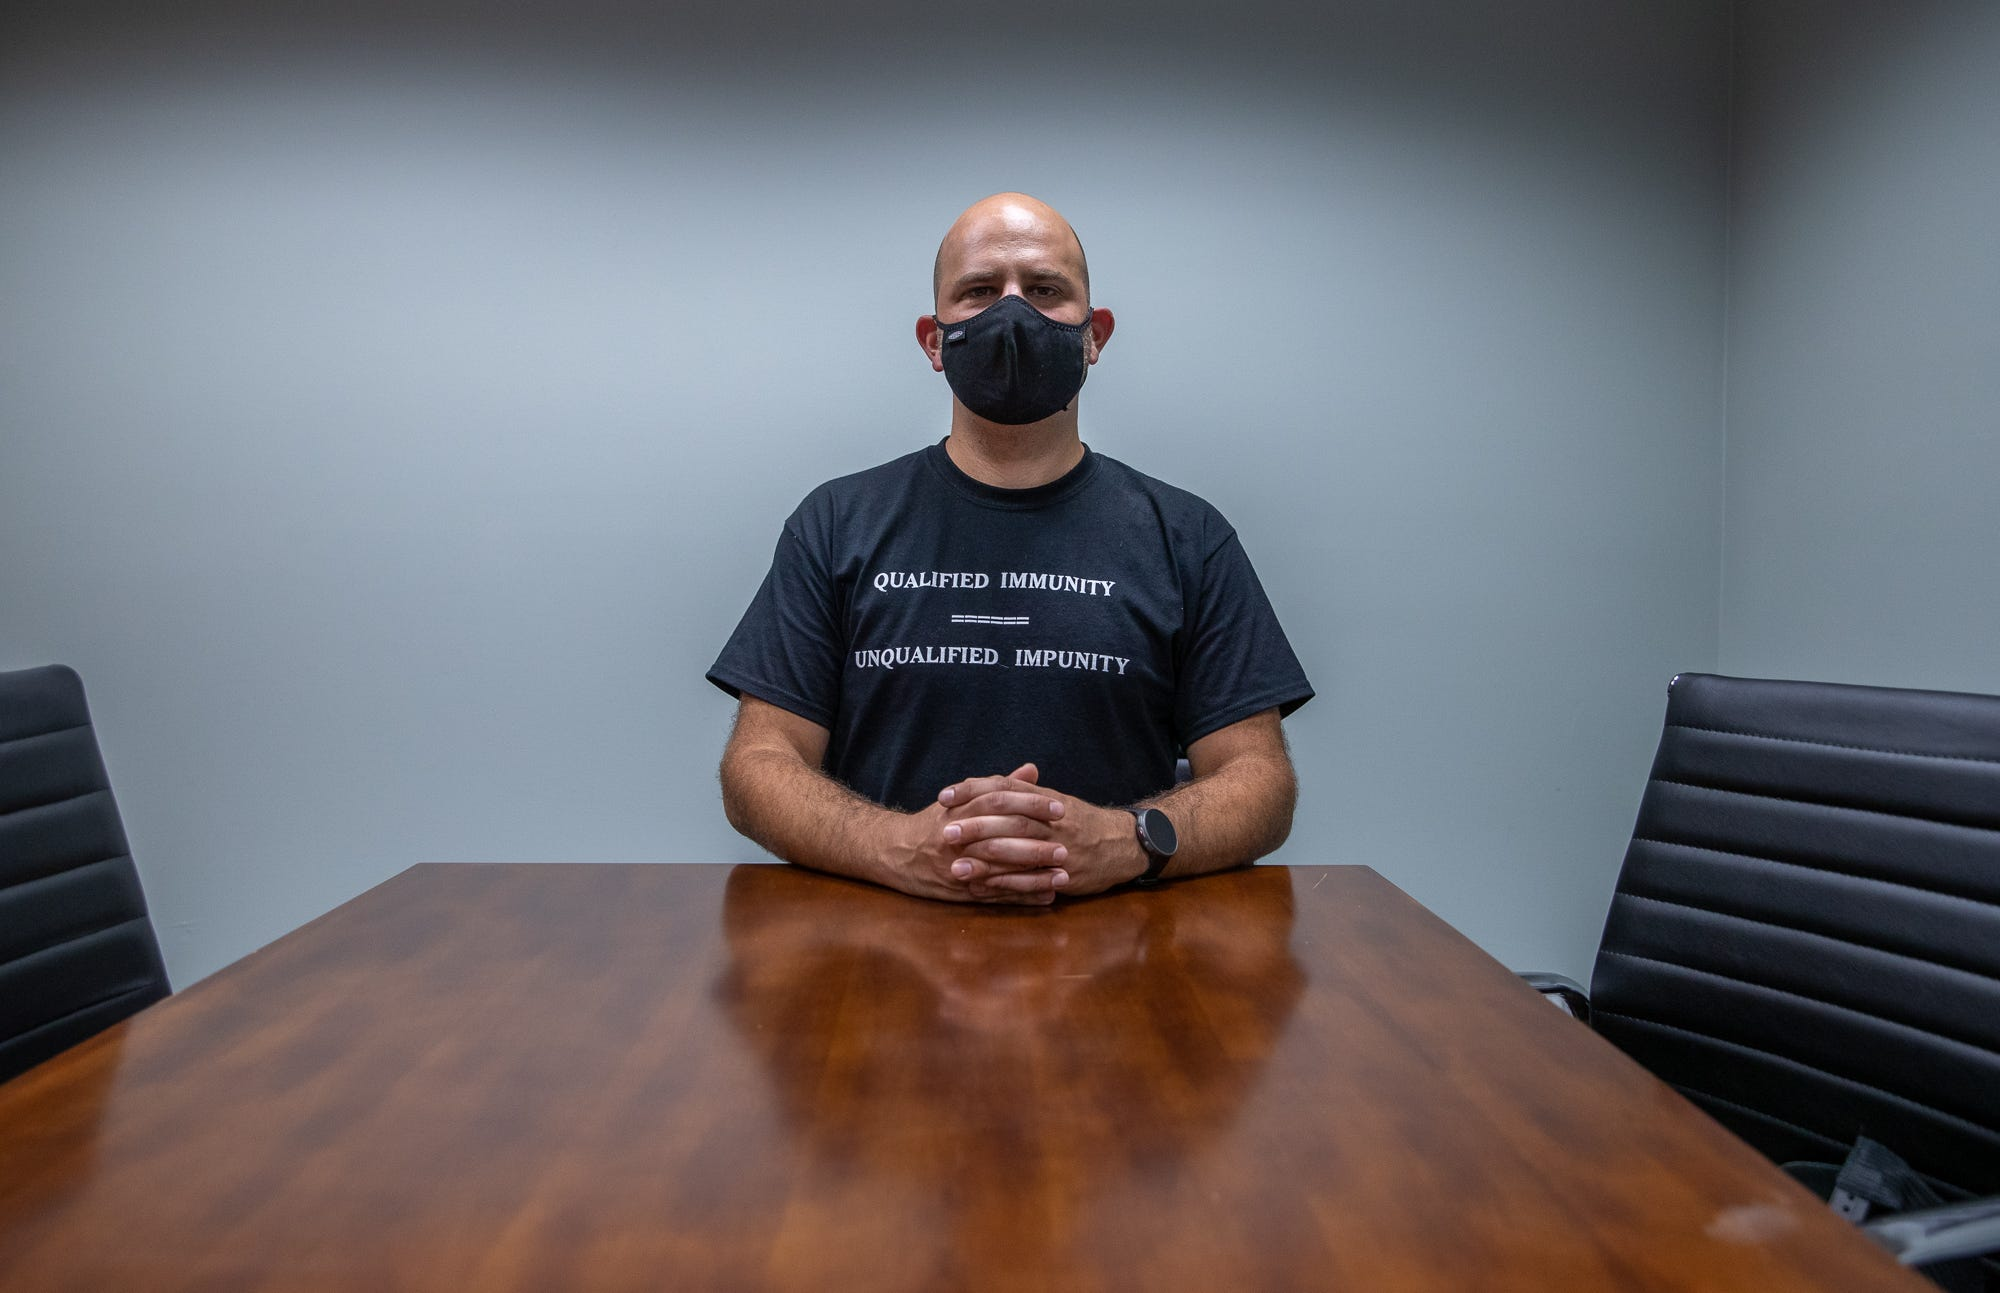 Jon Little, the lawyer representing Gordon Mitchum's dog bite case against the Indianapolis Metropolitan Police Department, poses for a portrait inside his office in Indianapolis on Tuesday, July 21, 2020.